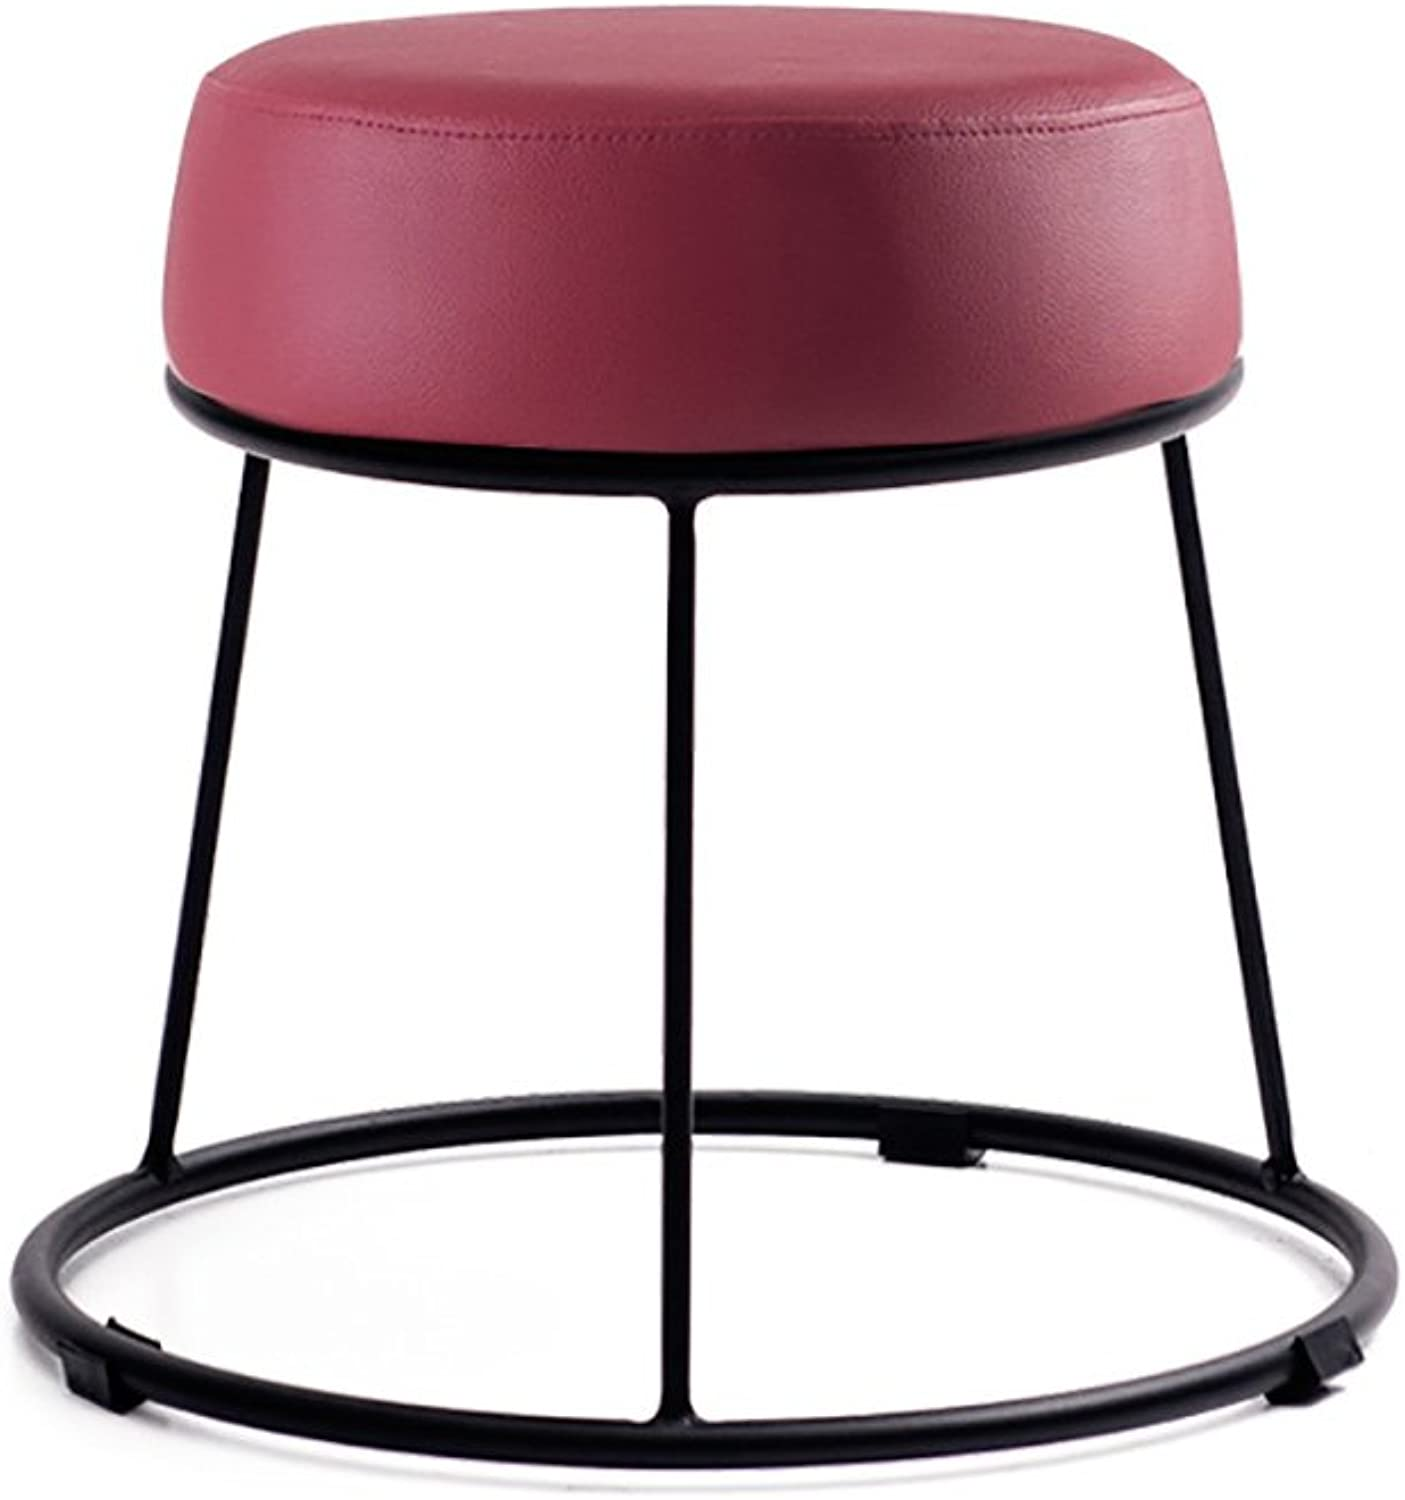 European Chair Soft Stools Padded Stool Home Stool Vanity Stool Small Stool Lazy Bench (color   B, Size   31.537.5cm)